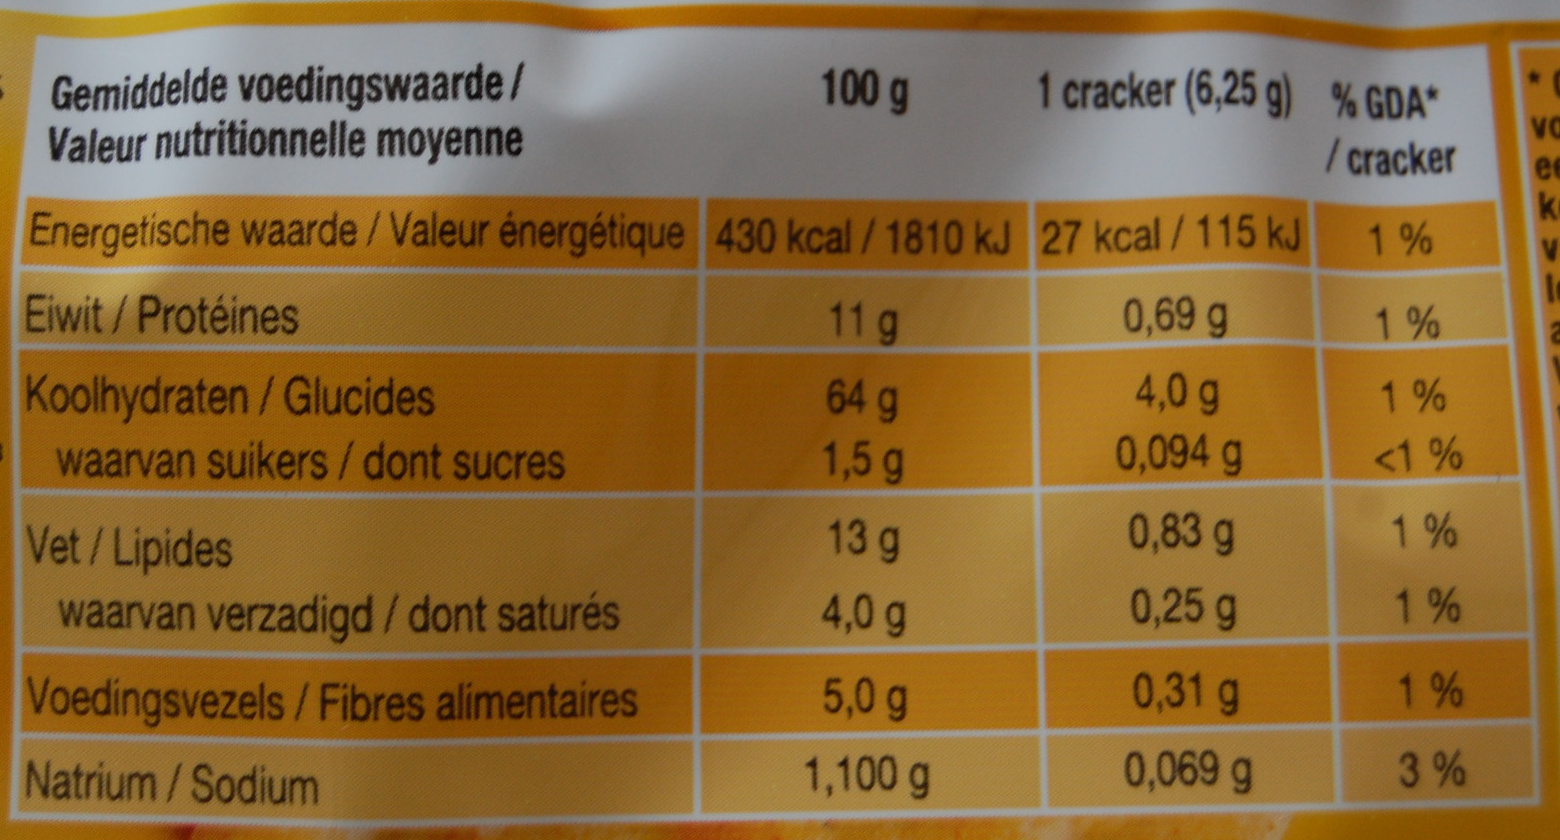 Mini crackers - Nutrition facts - fr